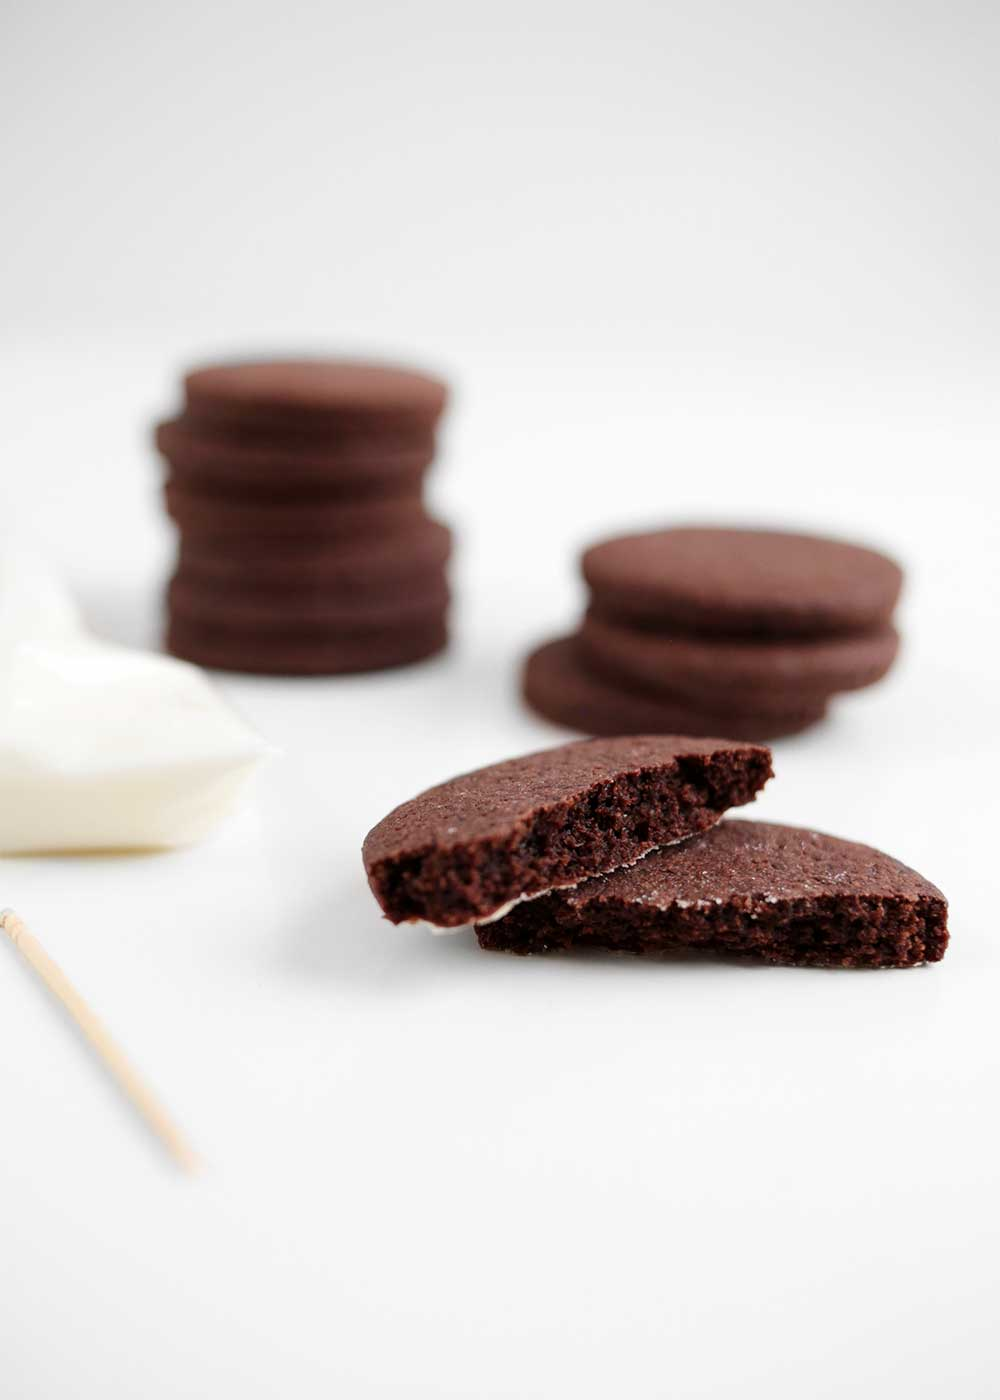 Chocolate Cardamom Rye Cut-Out Cookies from the faux martha